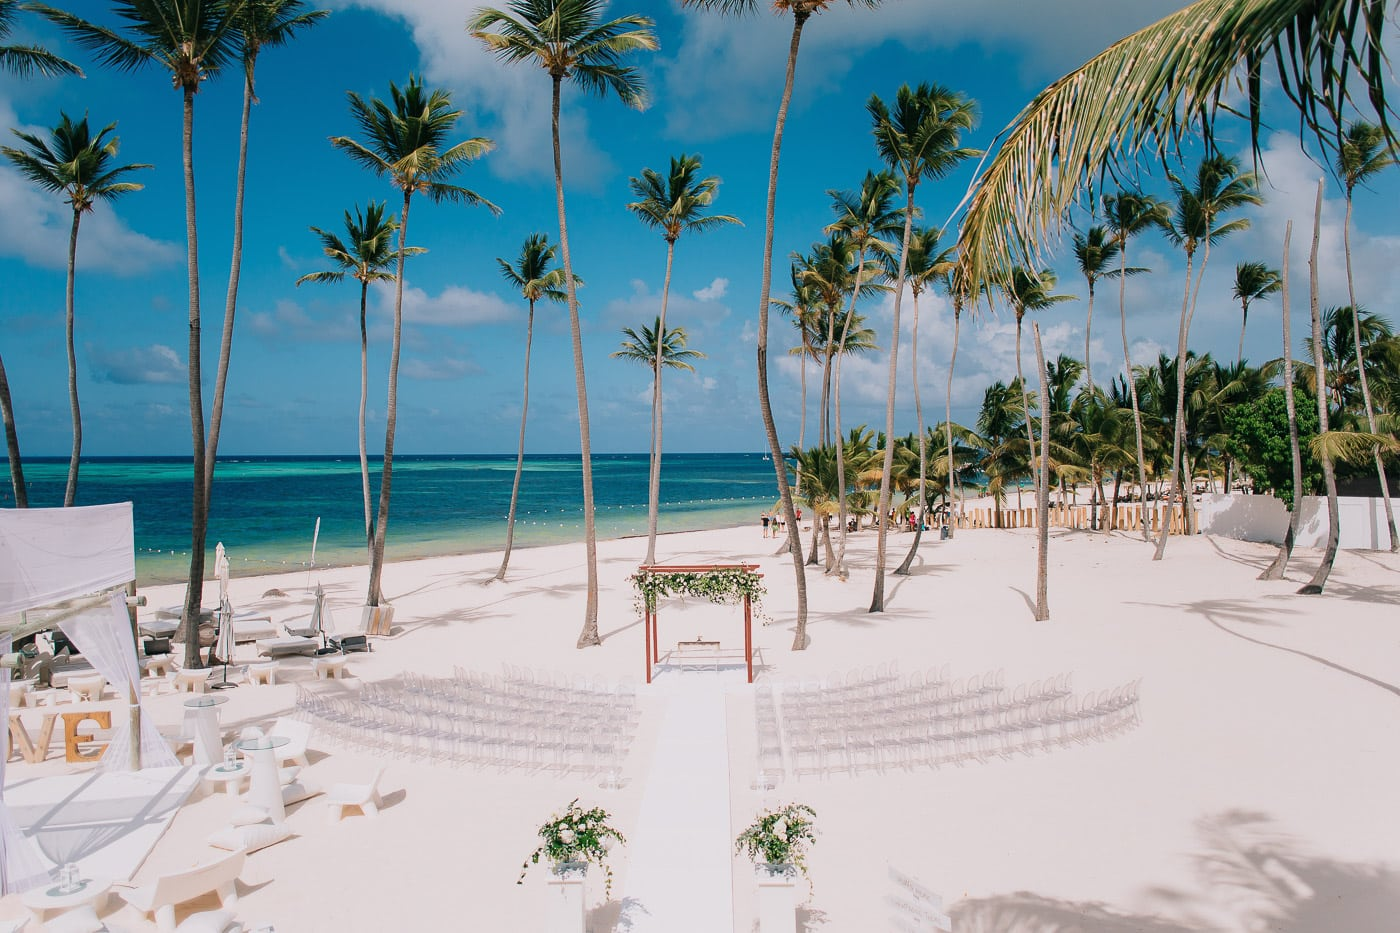 15 Tips For Planning a Beach Wedding